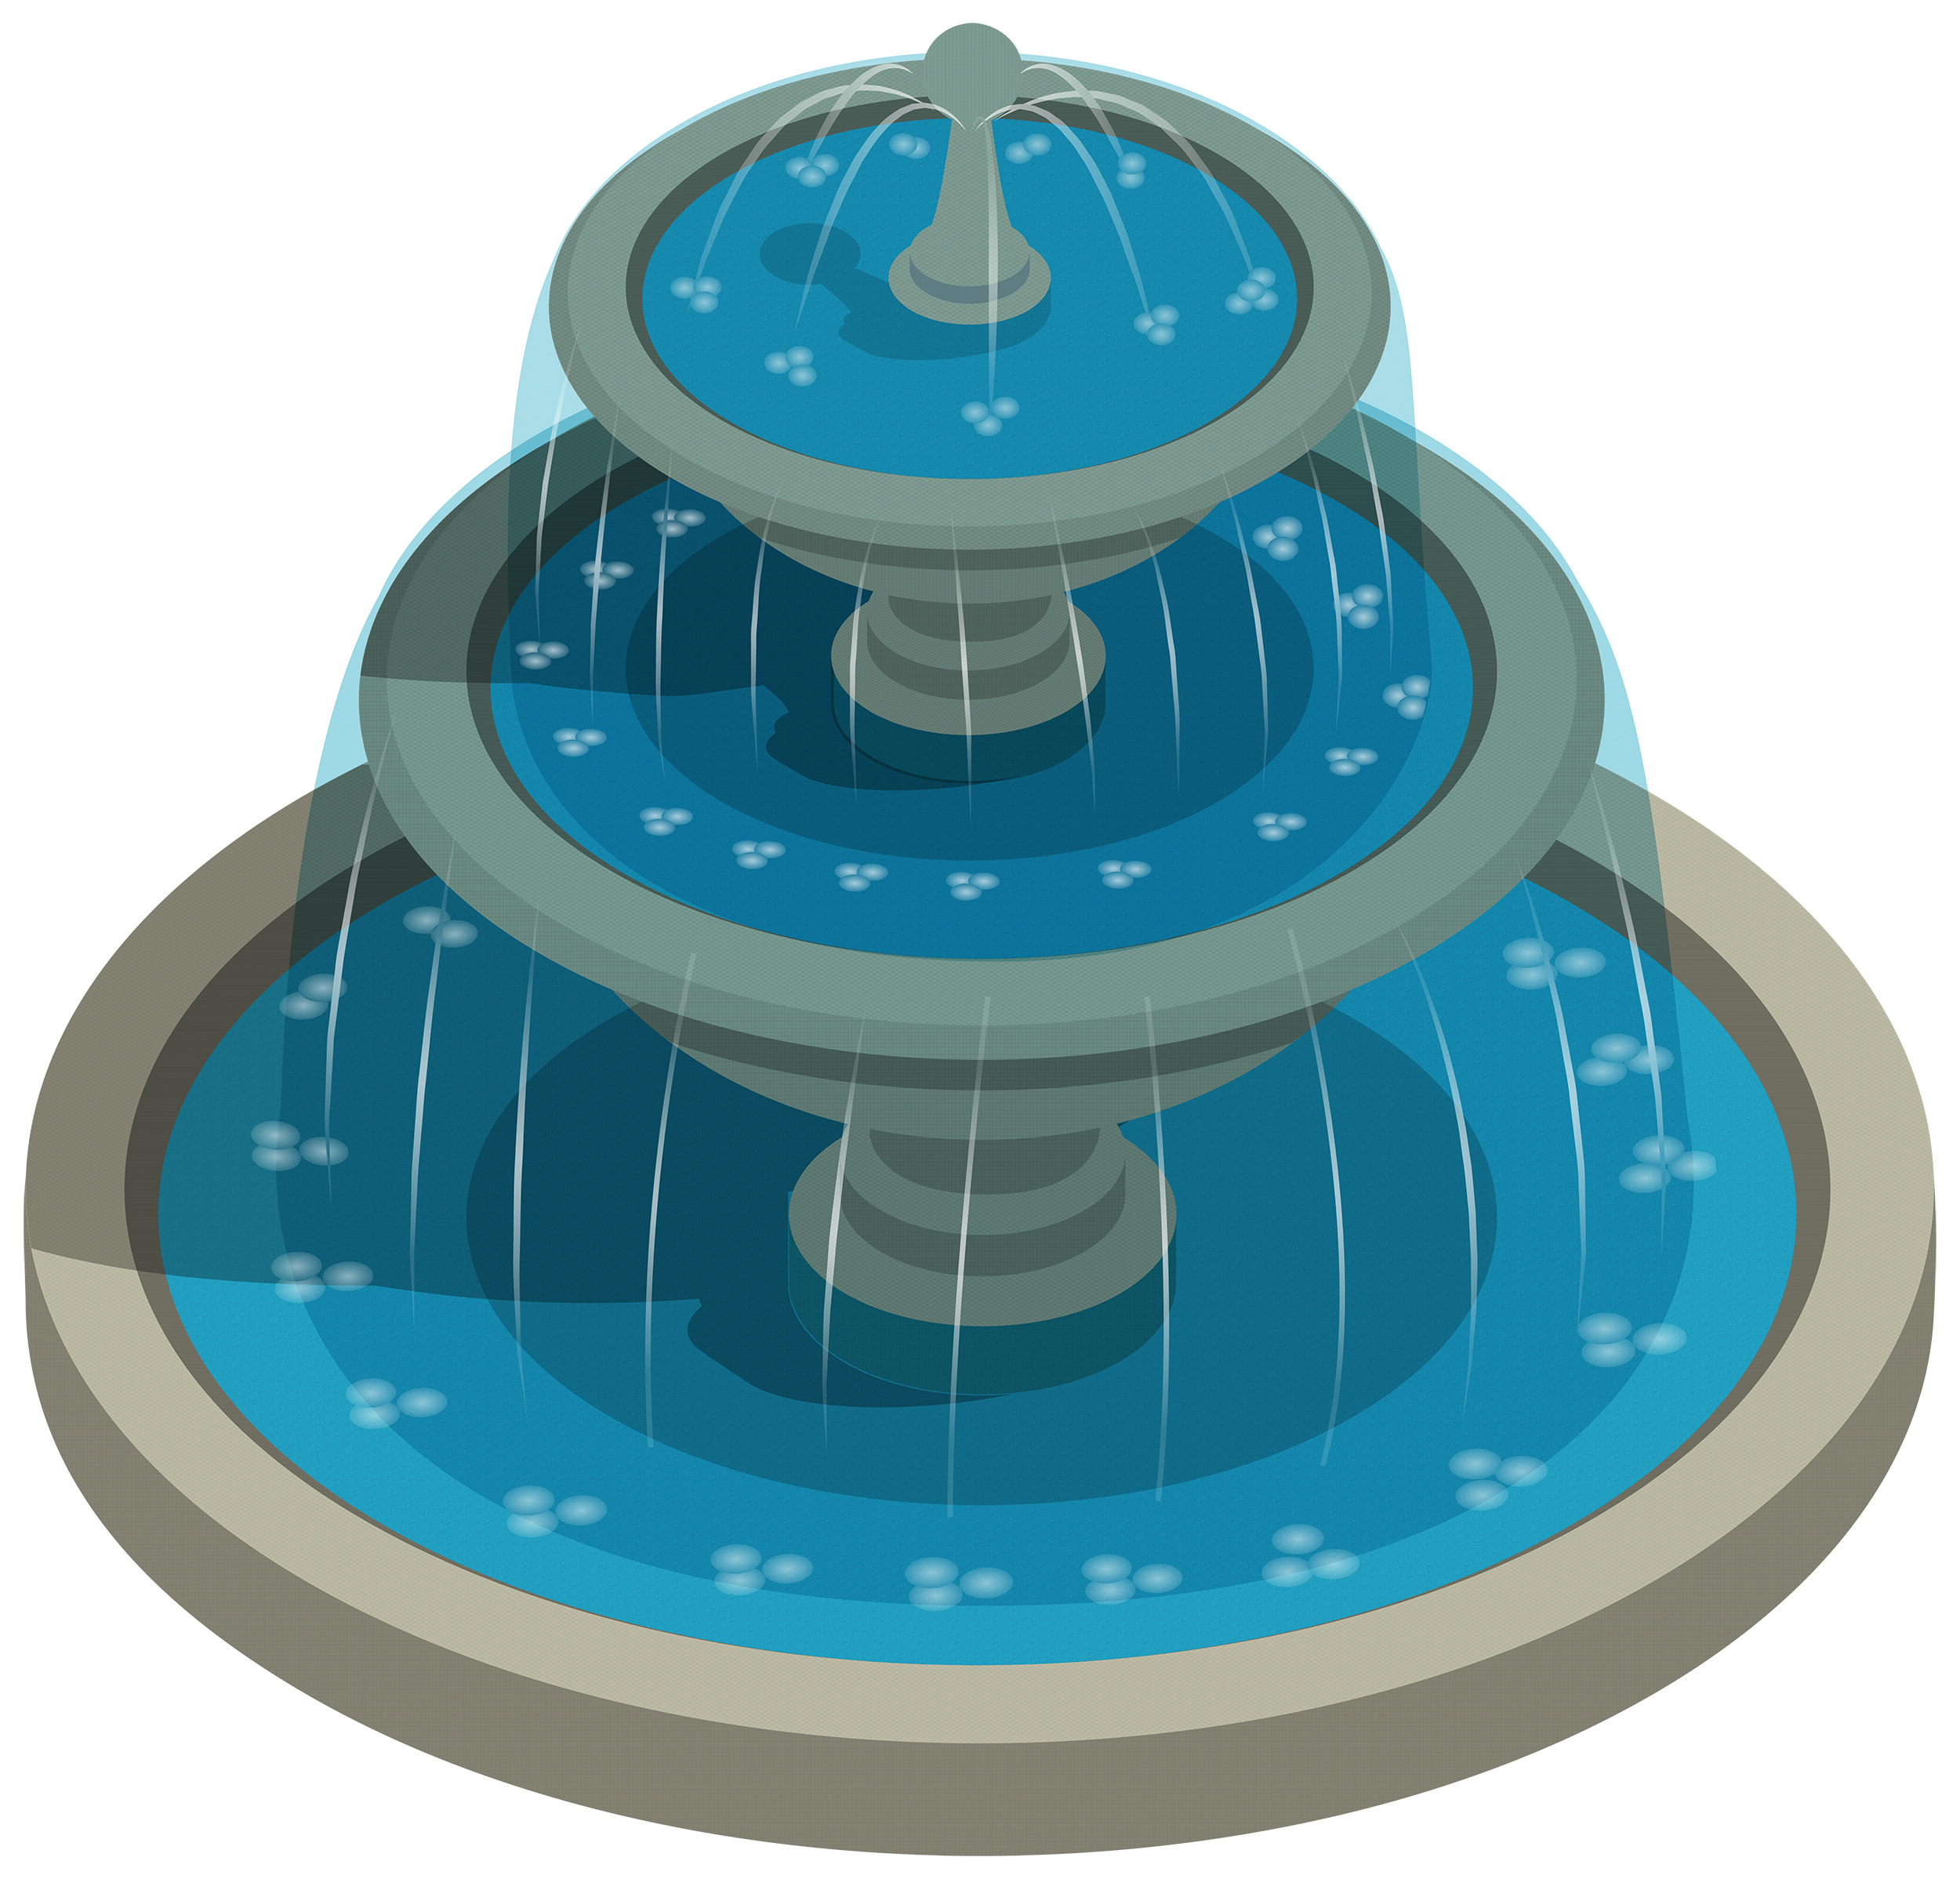 Round Water Fountain Png Clipart The Best Png Clipart Clip Art Water Fountain Fountain